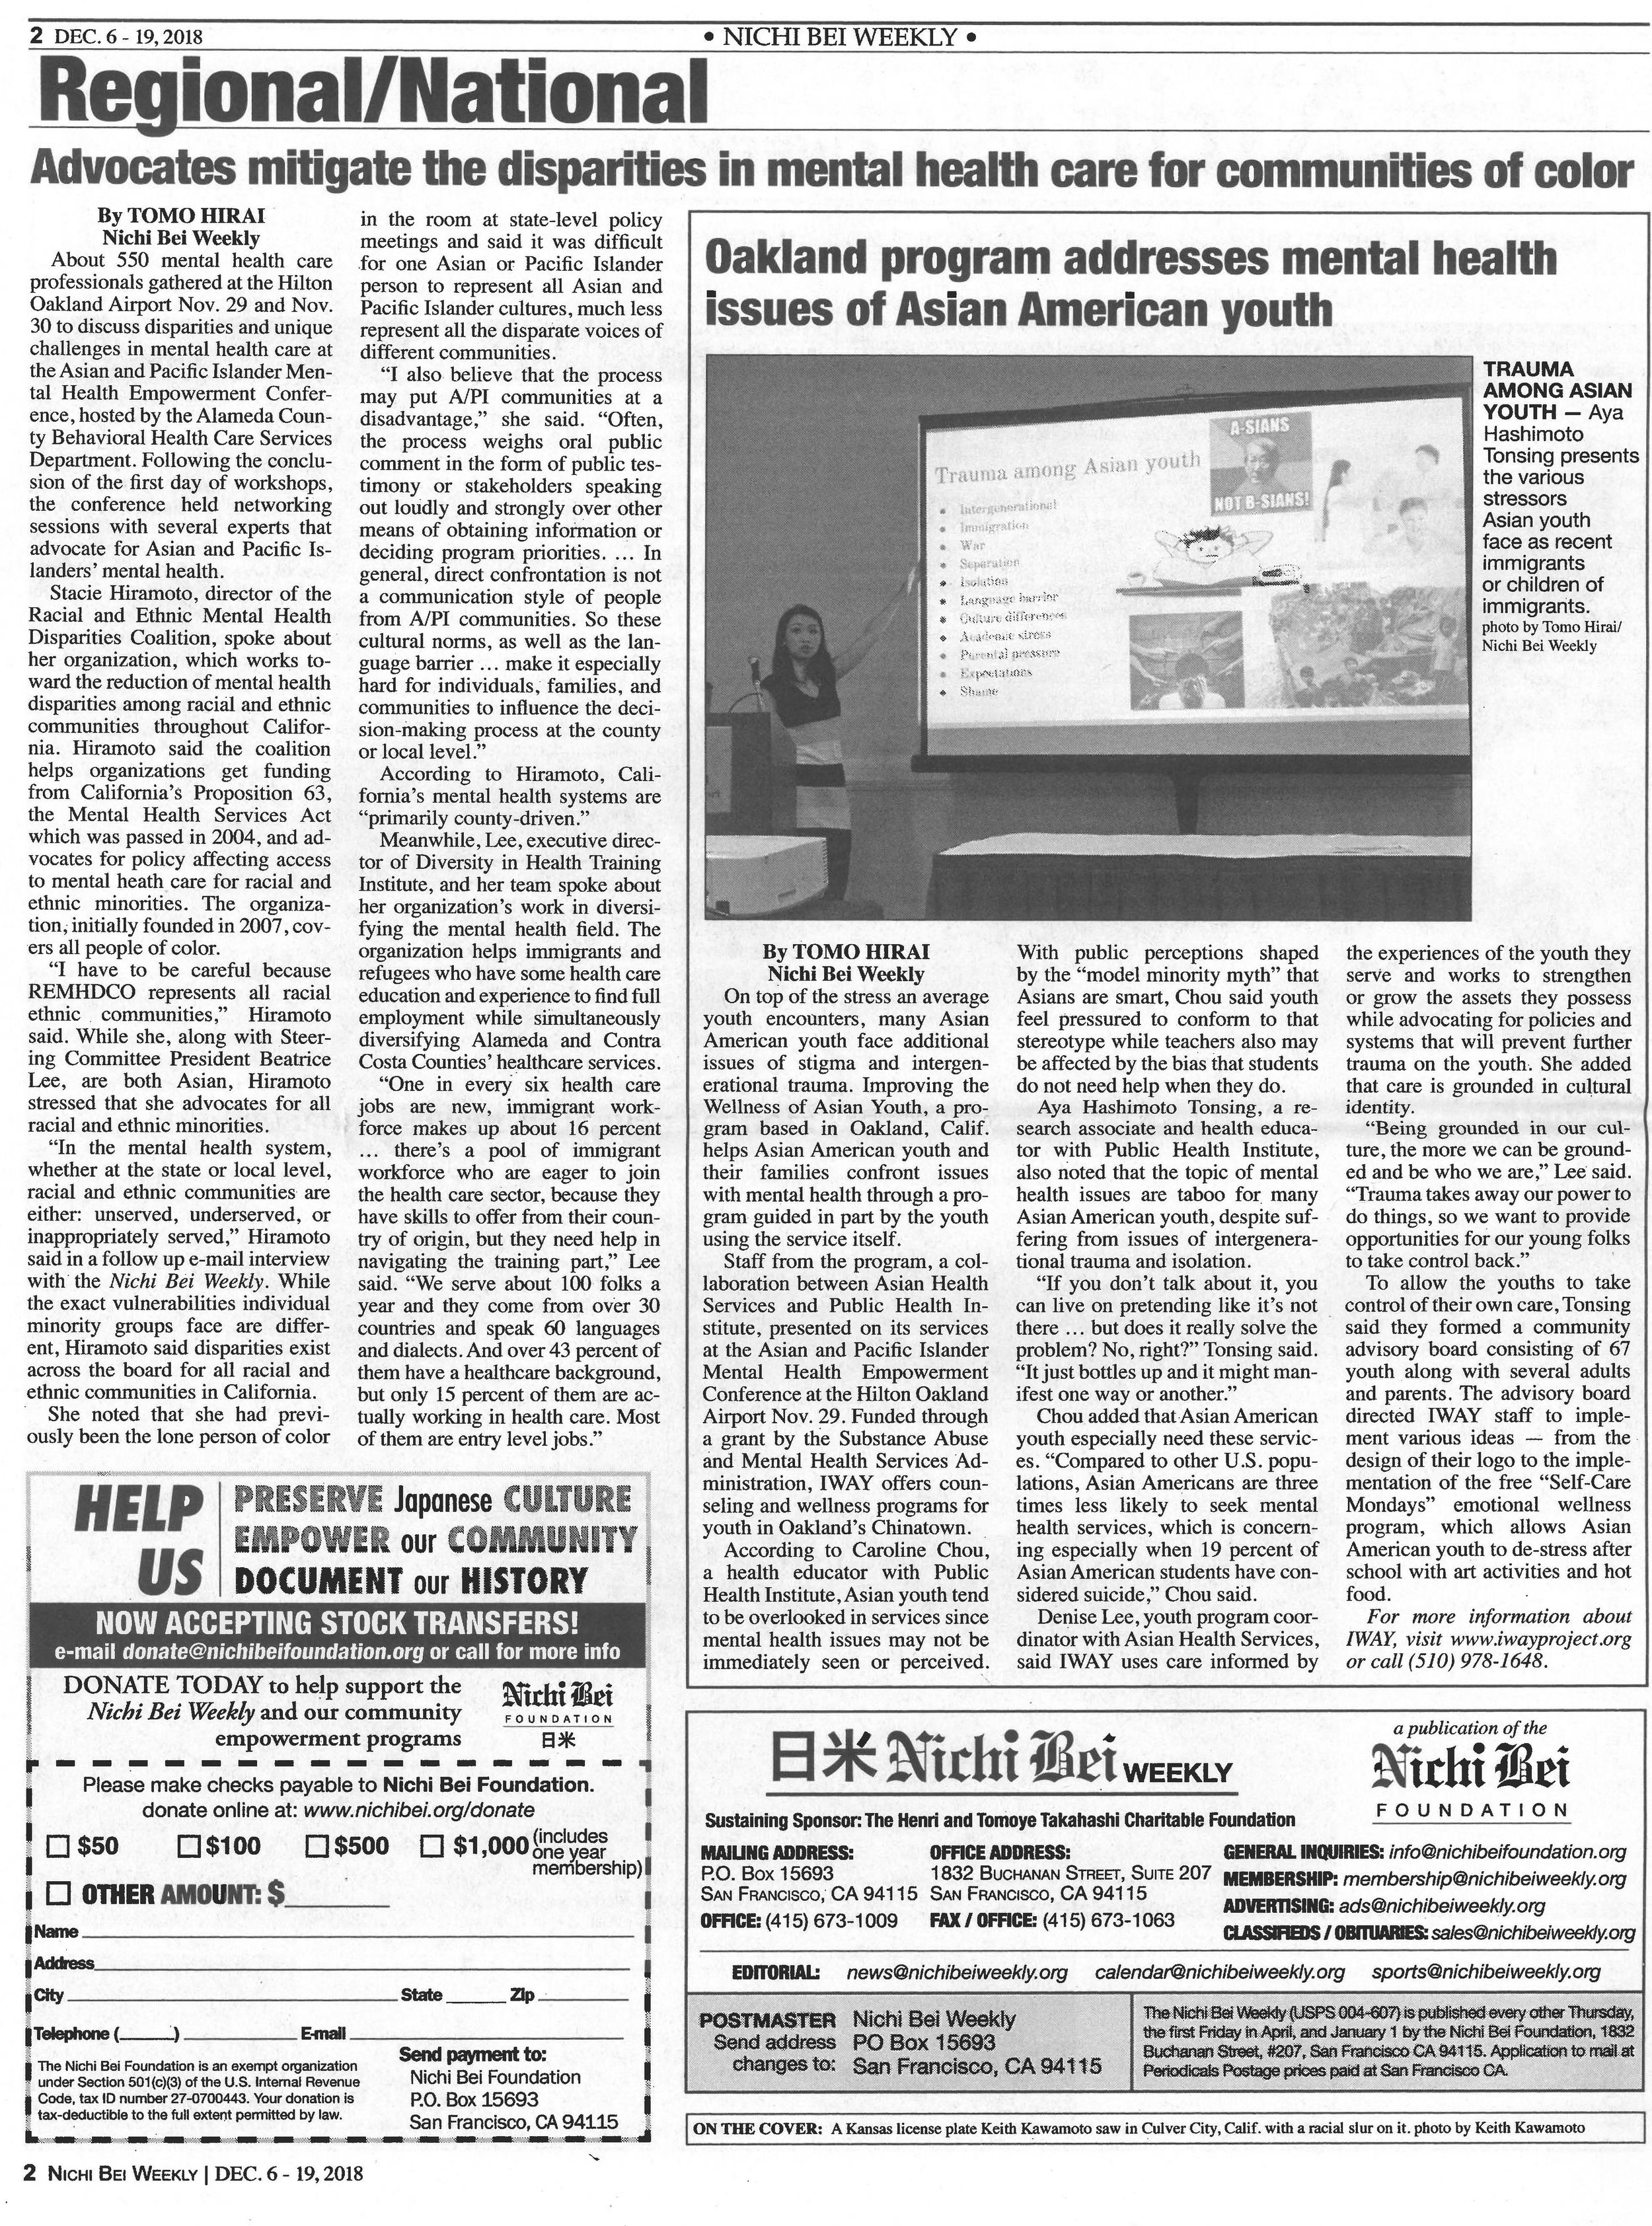 Beatrice Lee quoted in Nichi Bei Weekly - Beatrice Lee, Director of DHTI was quoted in the Nichi Bei Weekly